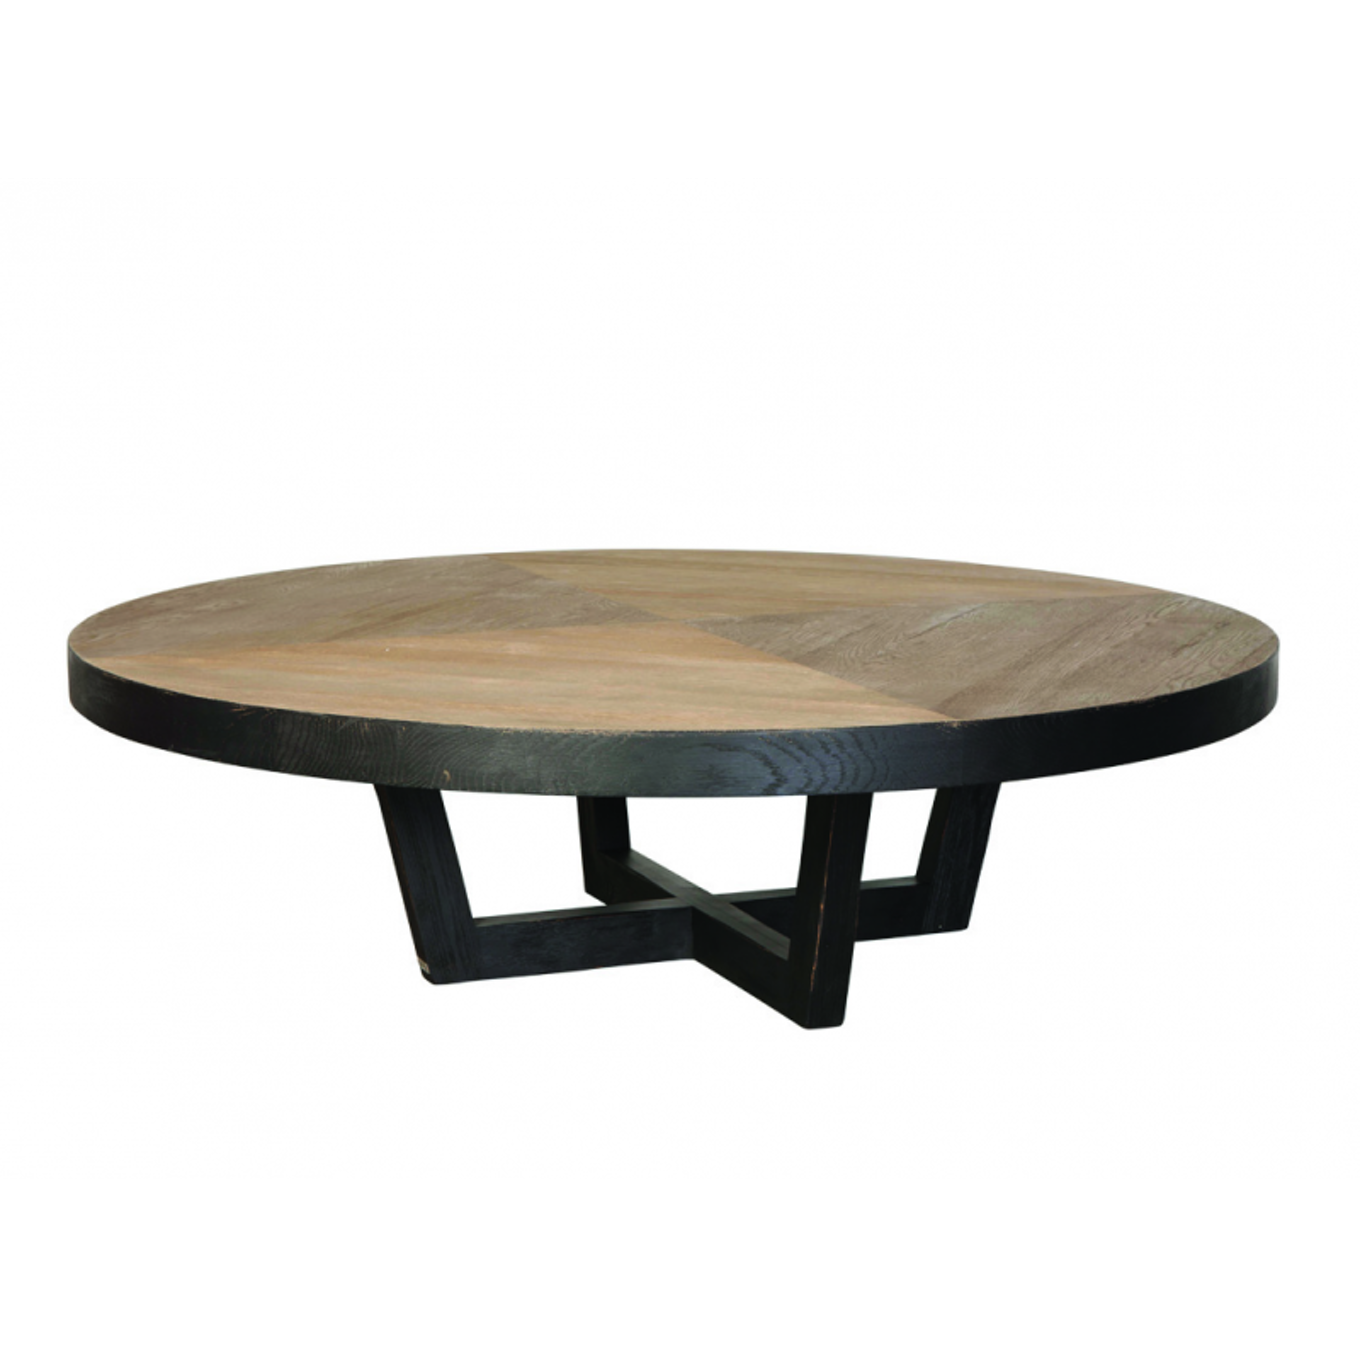 Table basse ronde osier avec pouf mobilier design for Table ronde en osier